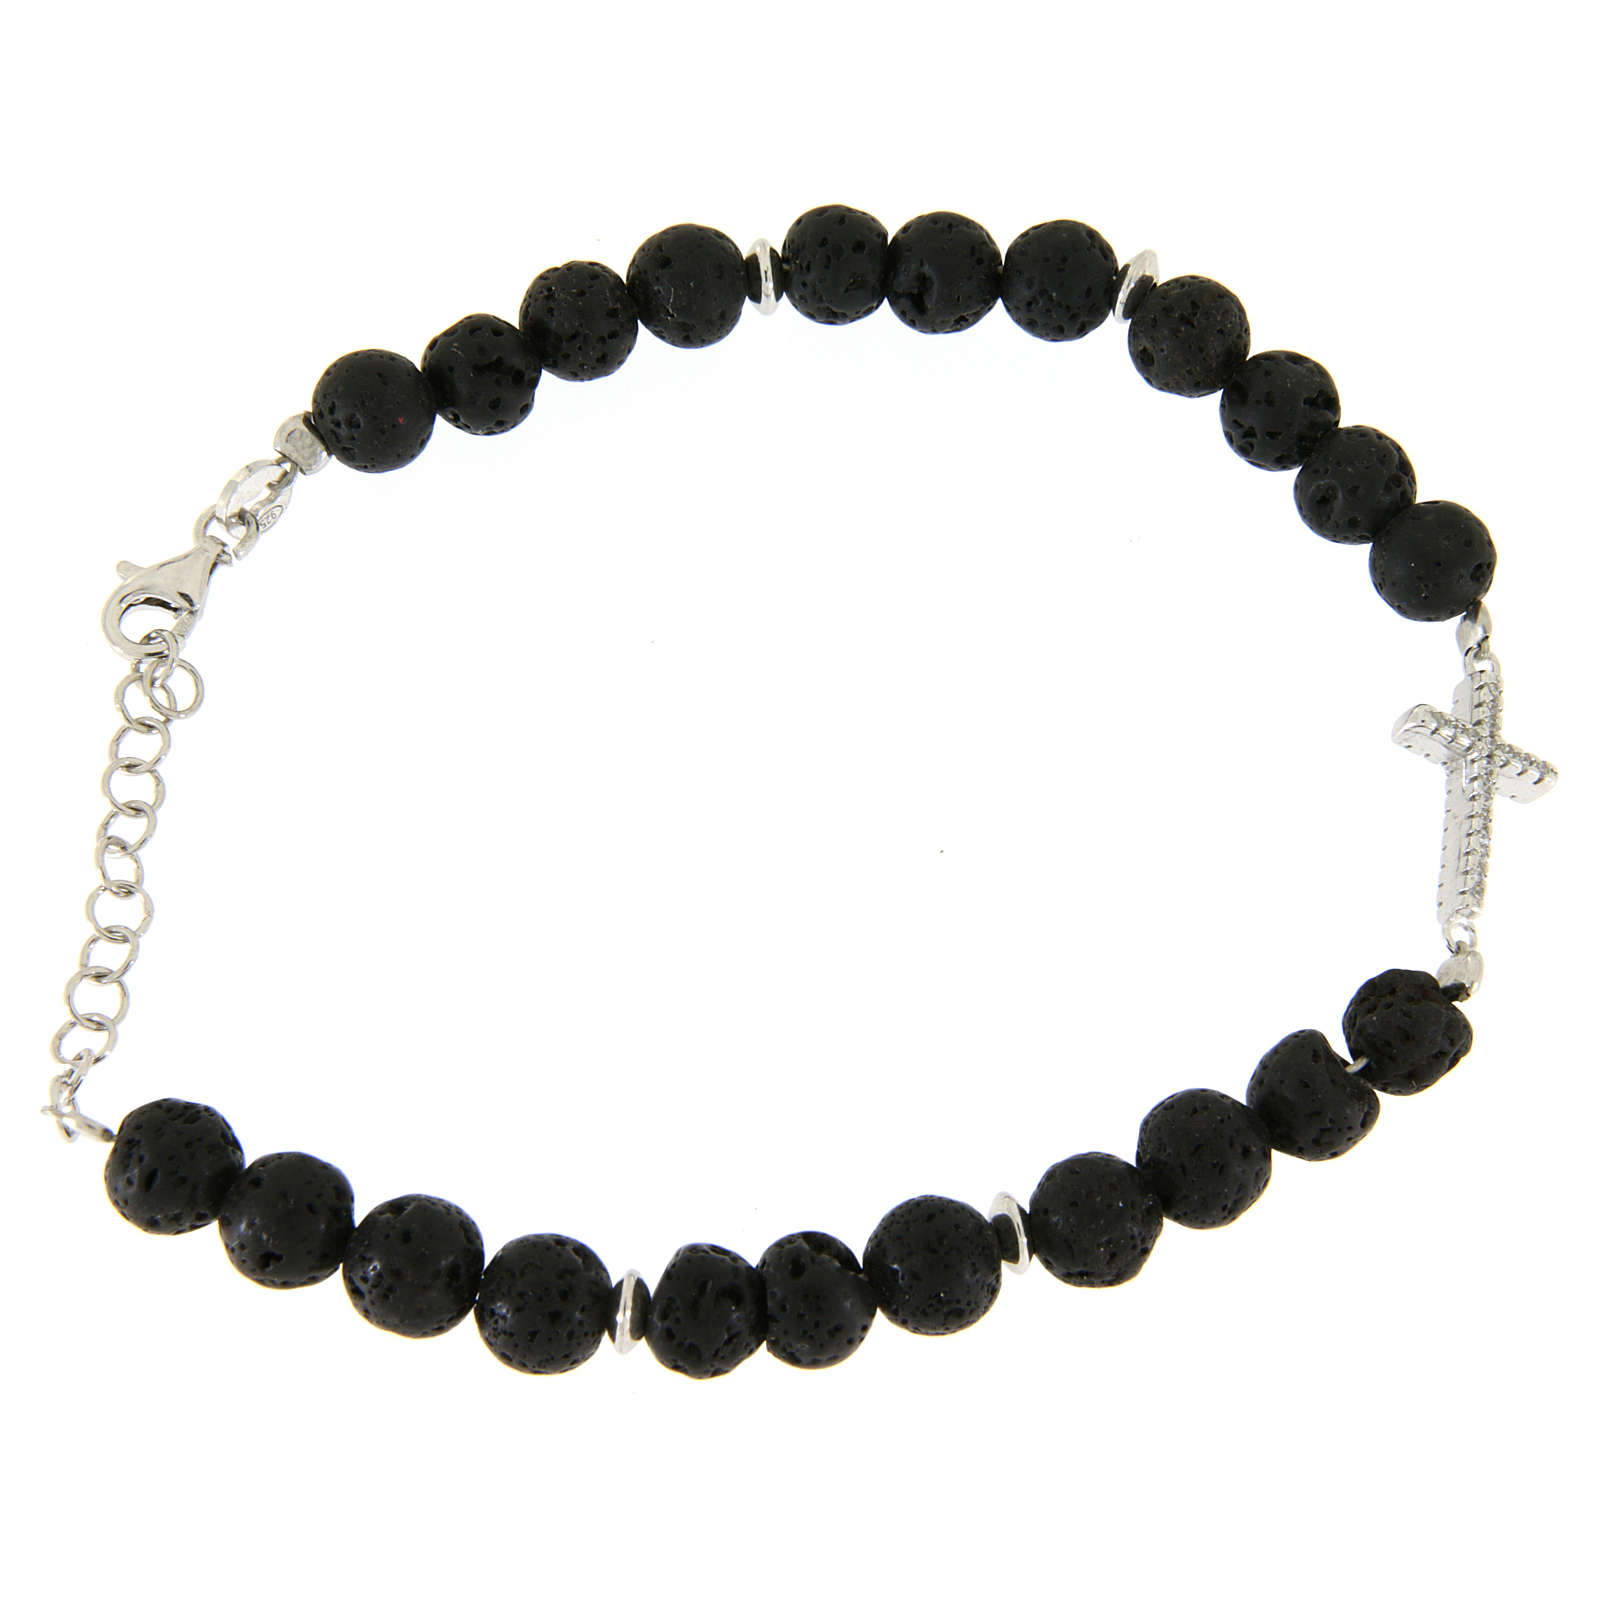 Bracelet with lava stone beads and white zirconate cross 4